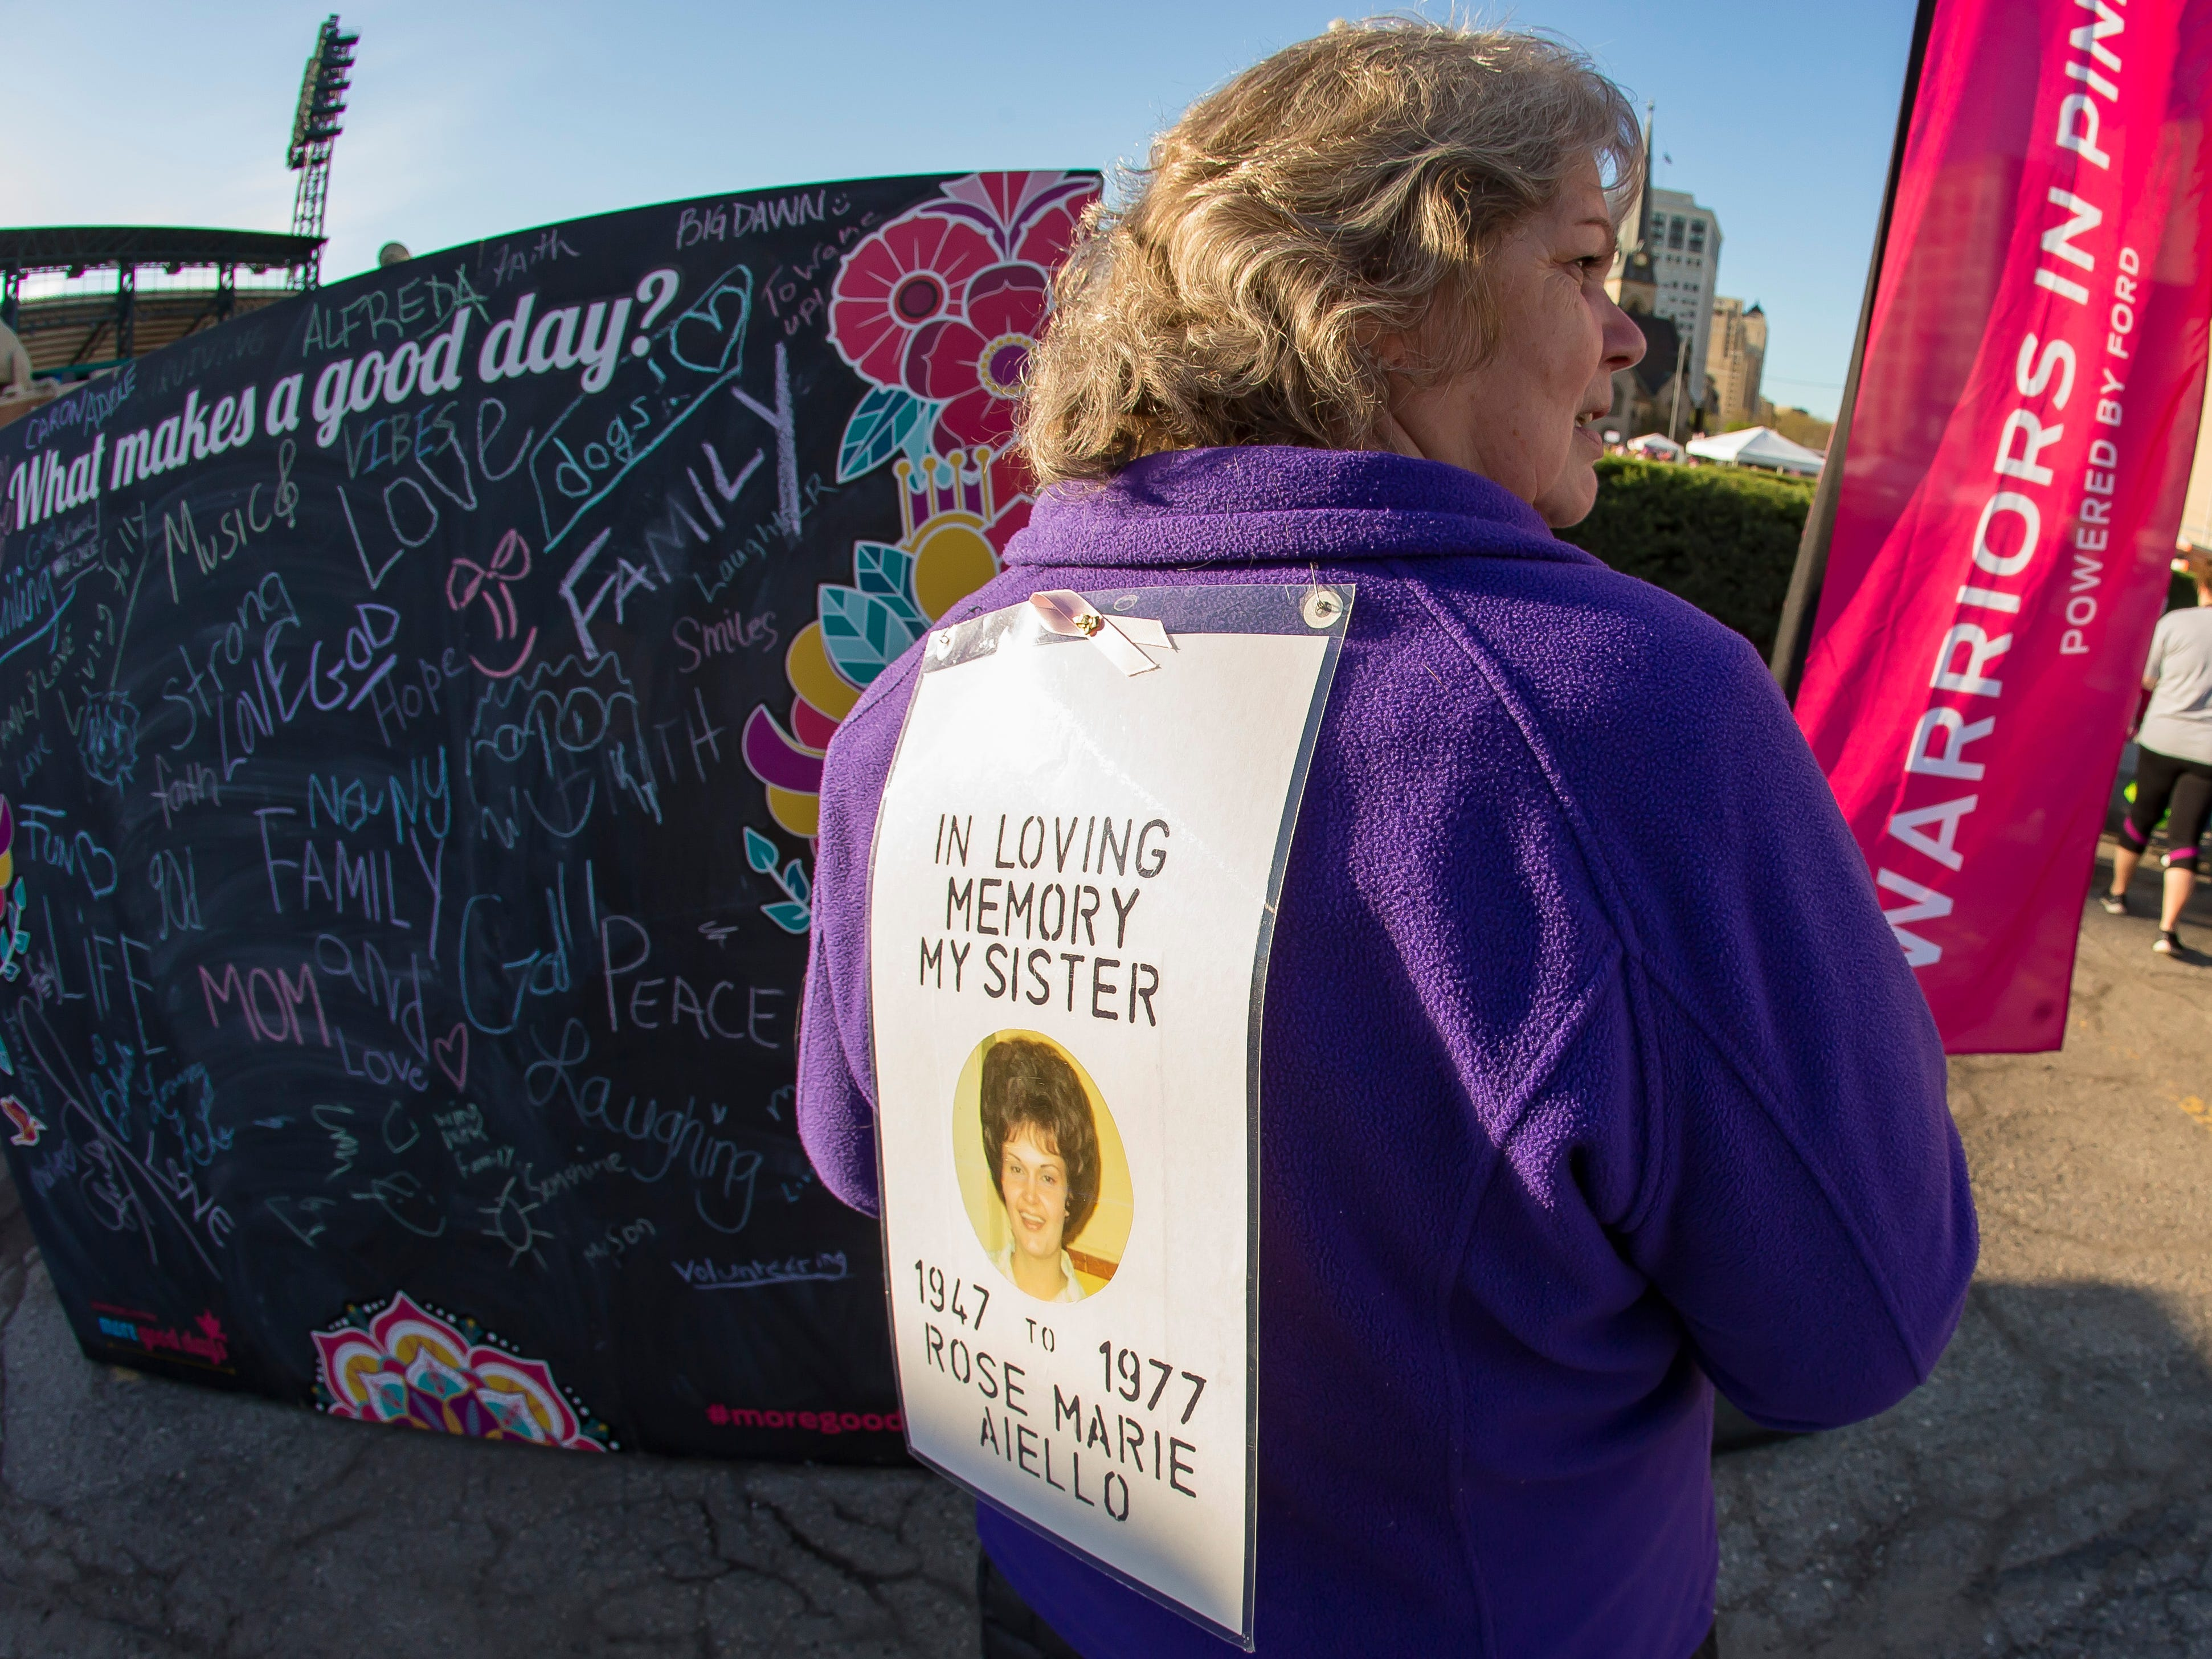 Diane McDonald participates in the Susan G. Komen Race for the Cure in honor of her sister at Comerica Park in Detroit Michigan. (Photo by Dave Reginek-Special to Detroit News)